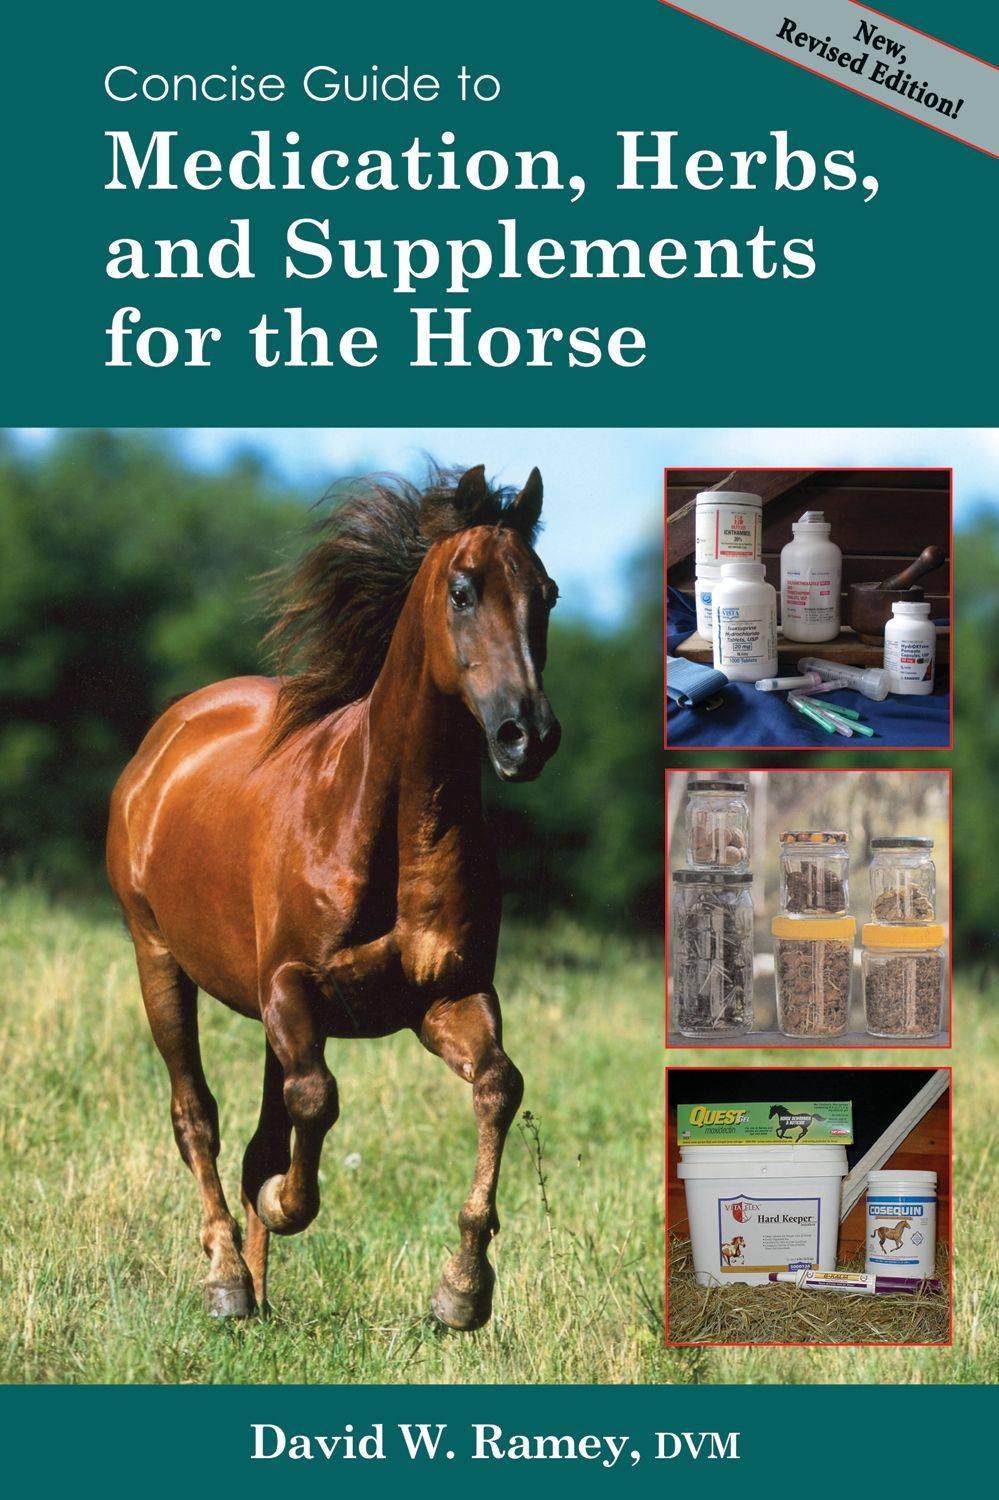 Concise Guide to Supplements & Medications - David Ramey DVM